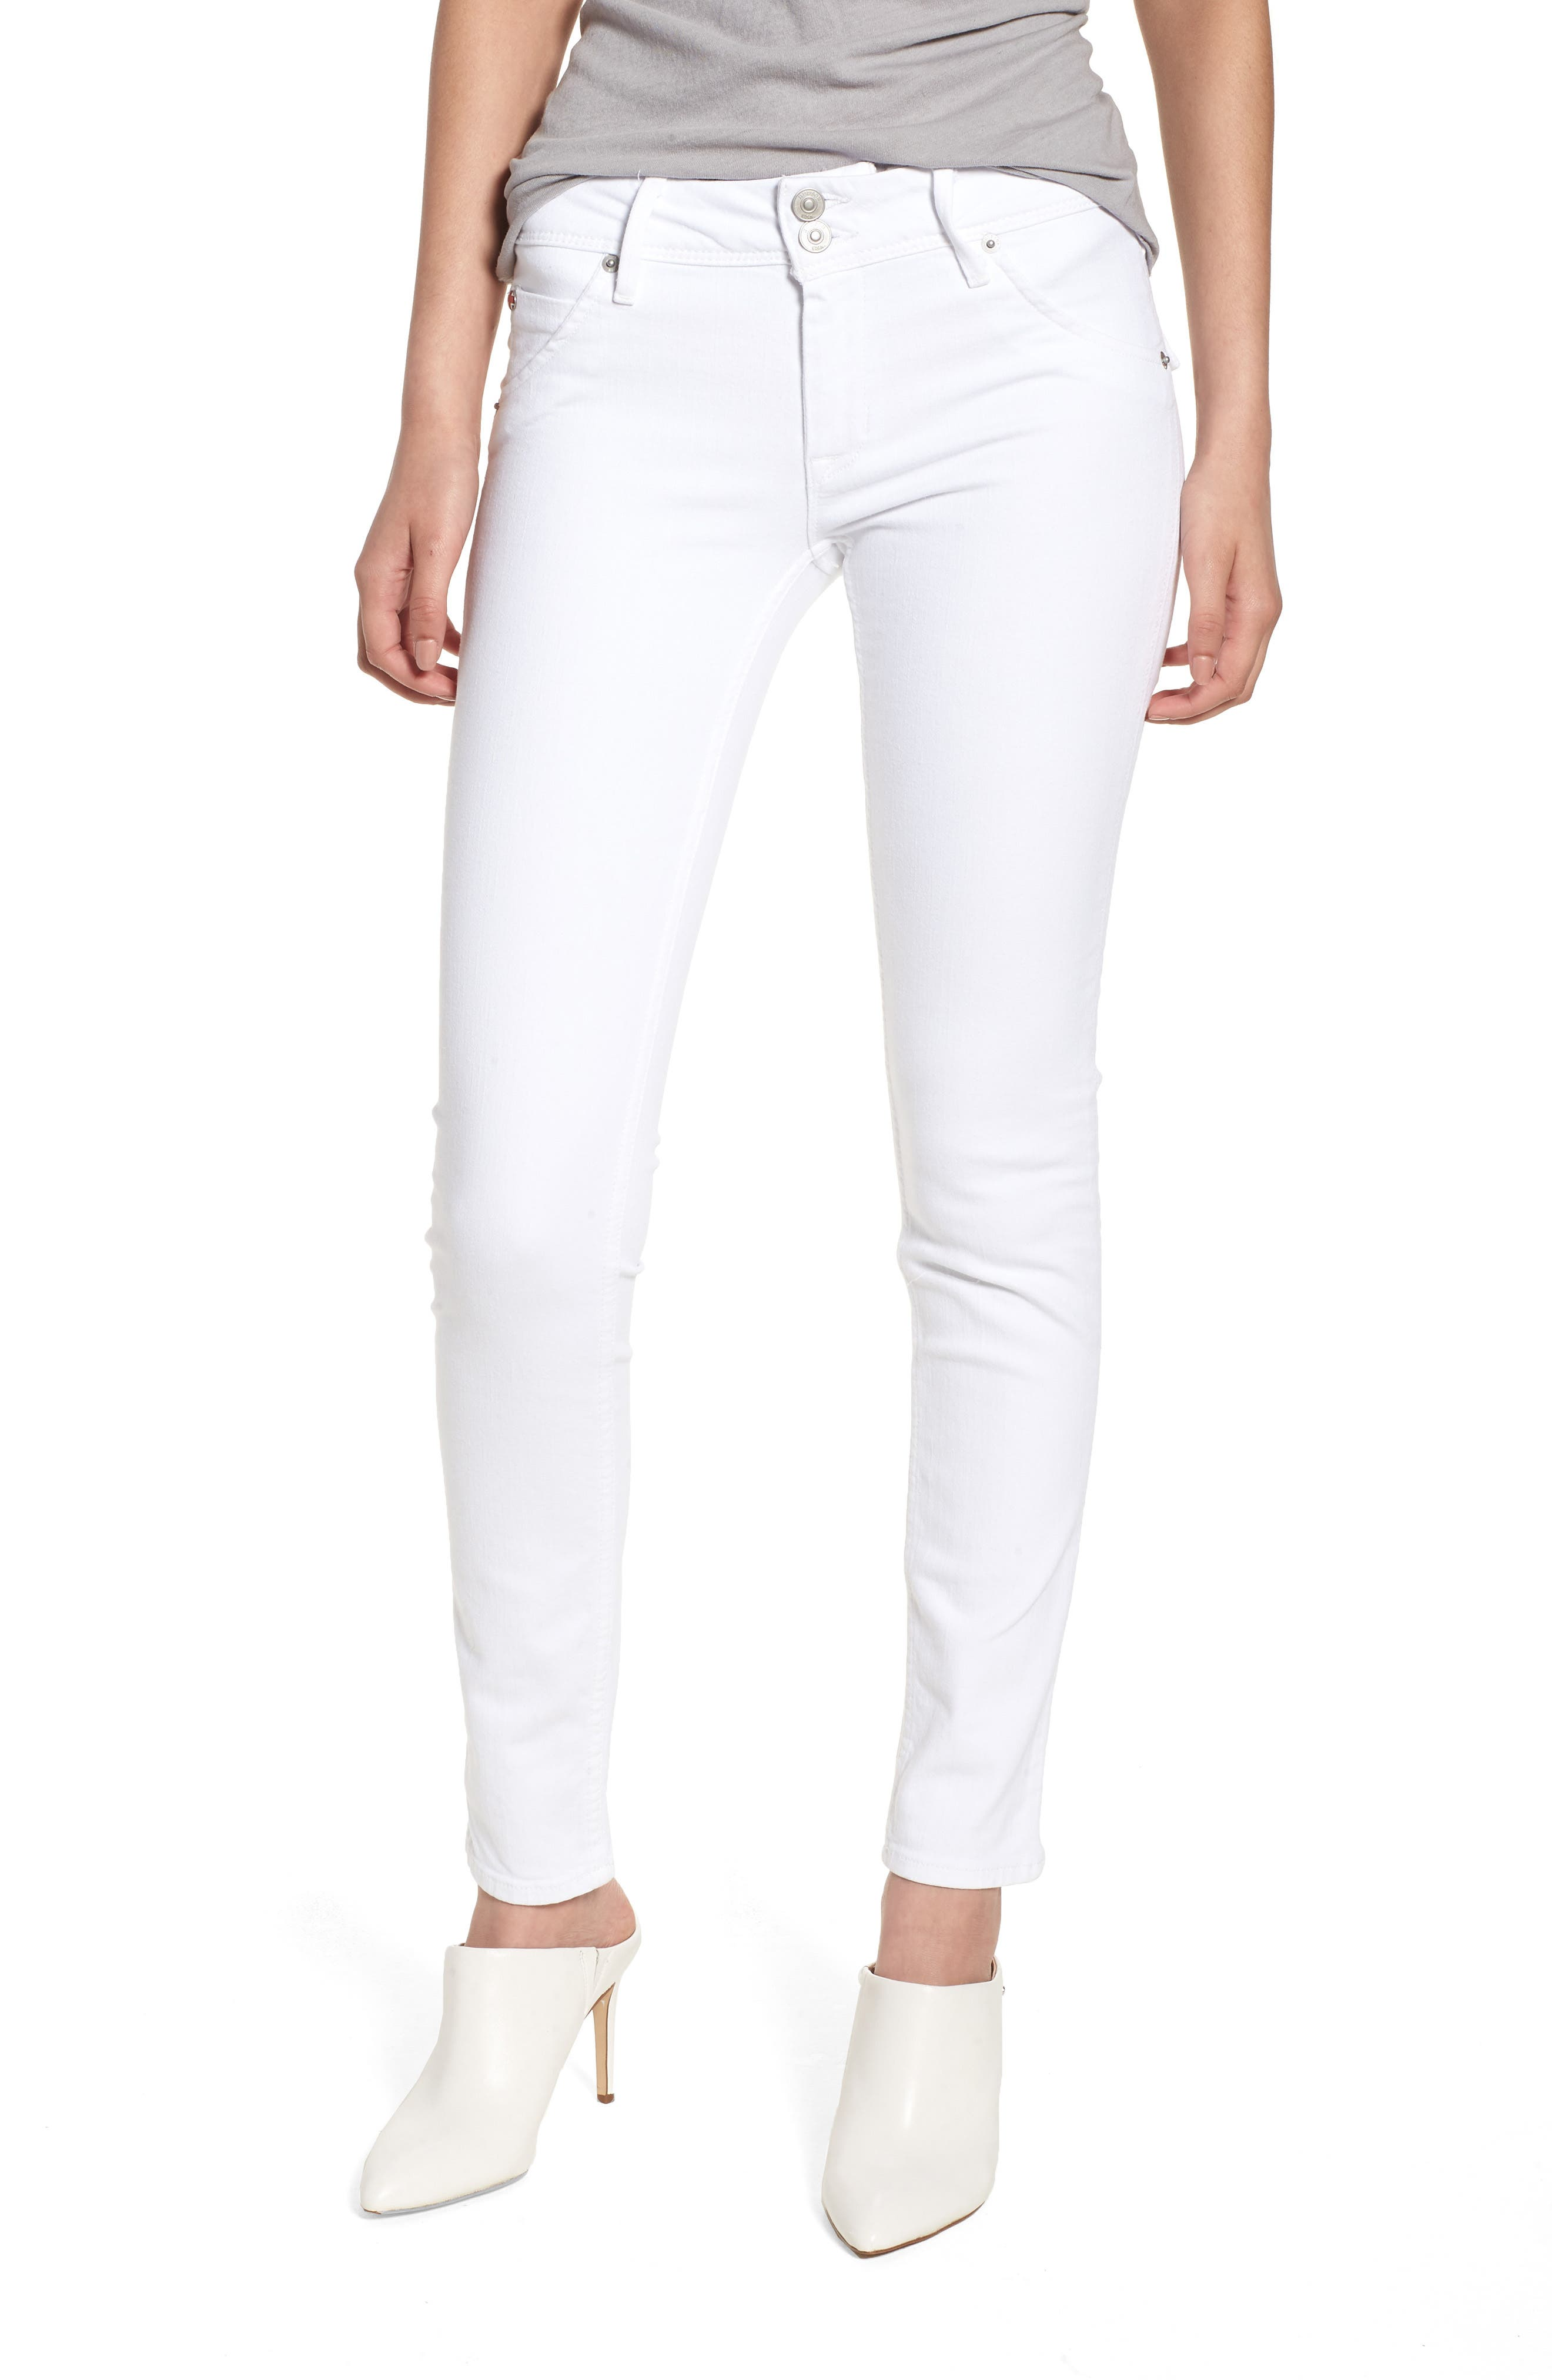 Main Image - Hudson Jeans Collin Skinny Jeans (Optical White)